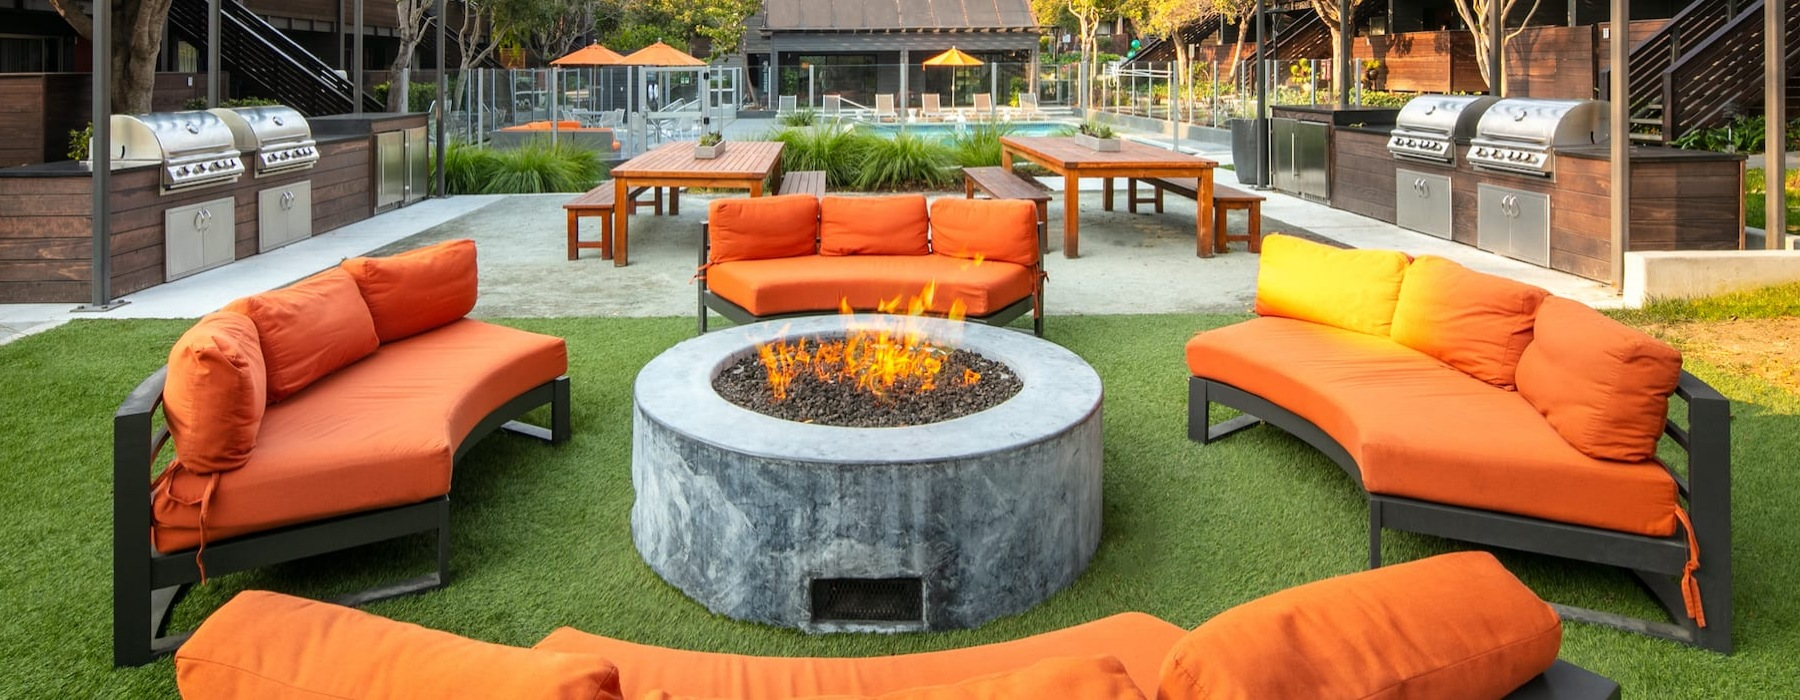 Large outdoor BBQ area with a fire pit and plenty of seating